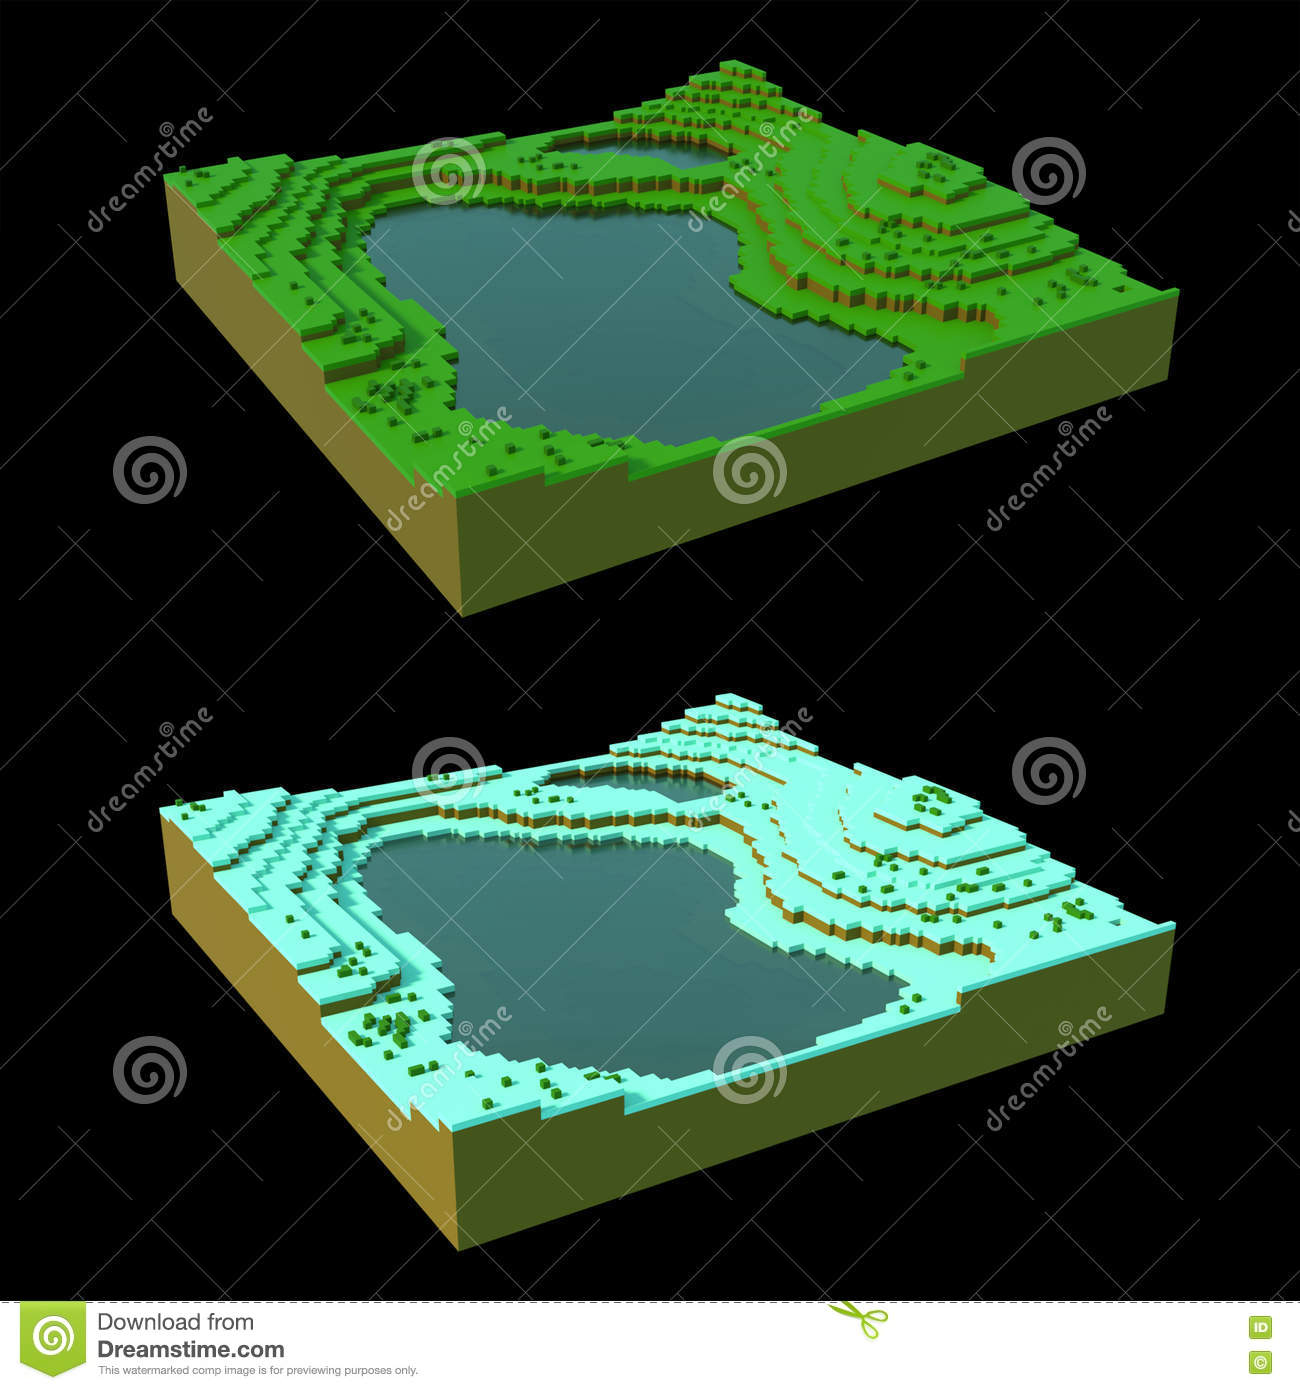 More similar stock images of 3d landscape with fall tree - Voxel Landscape In Two Seasons Stock Photography